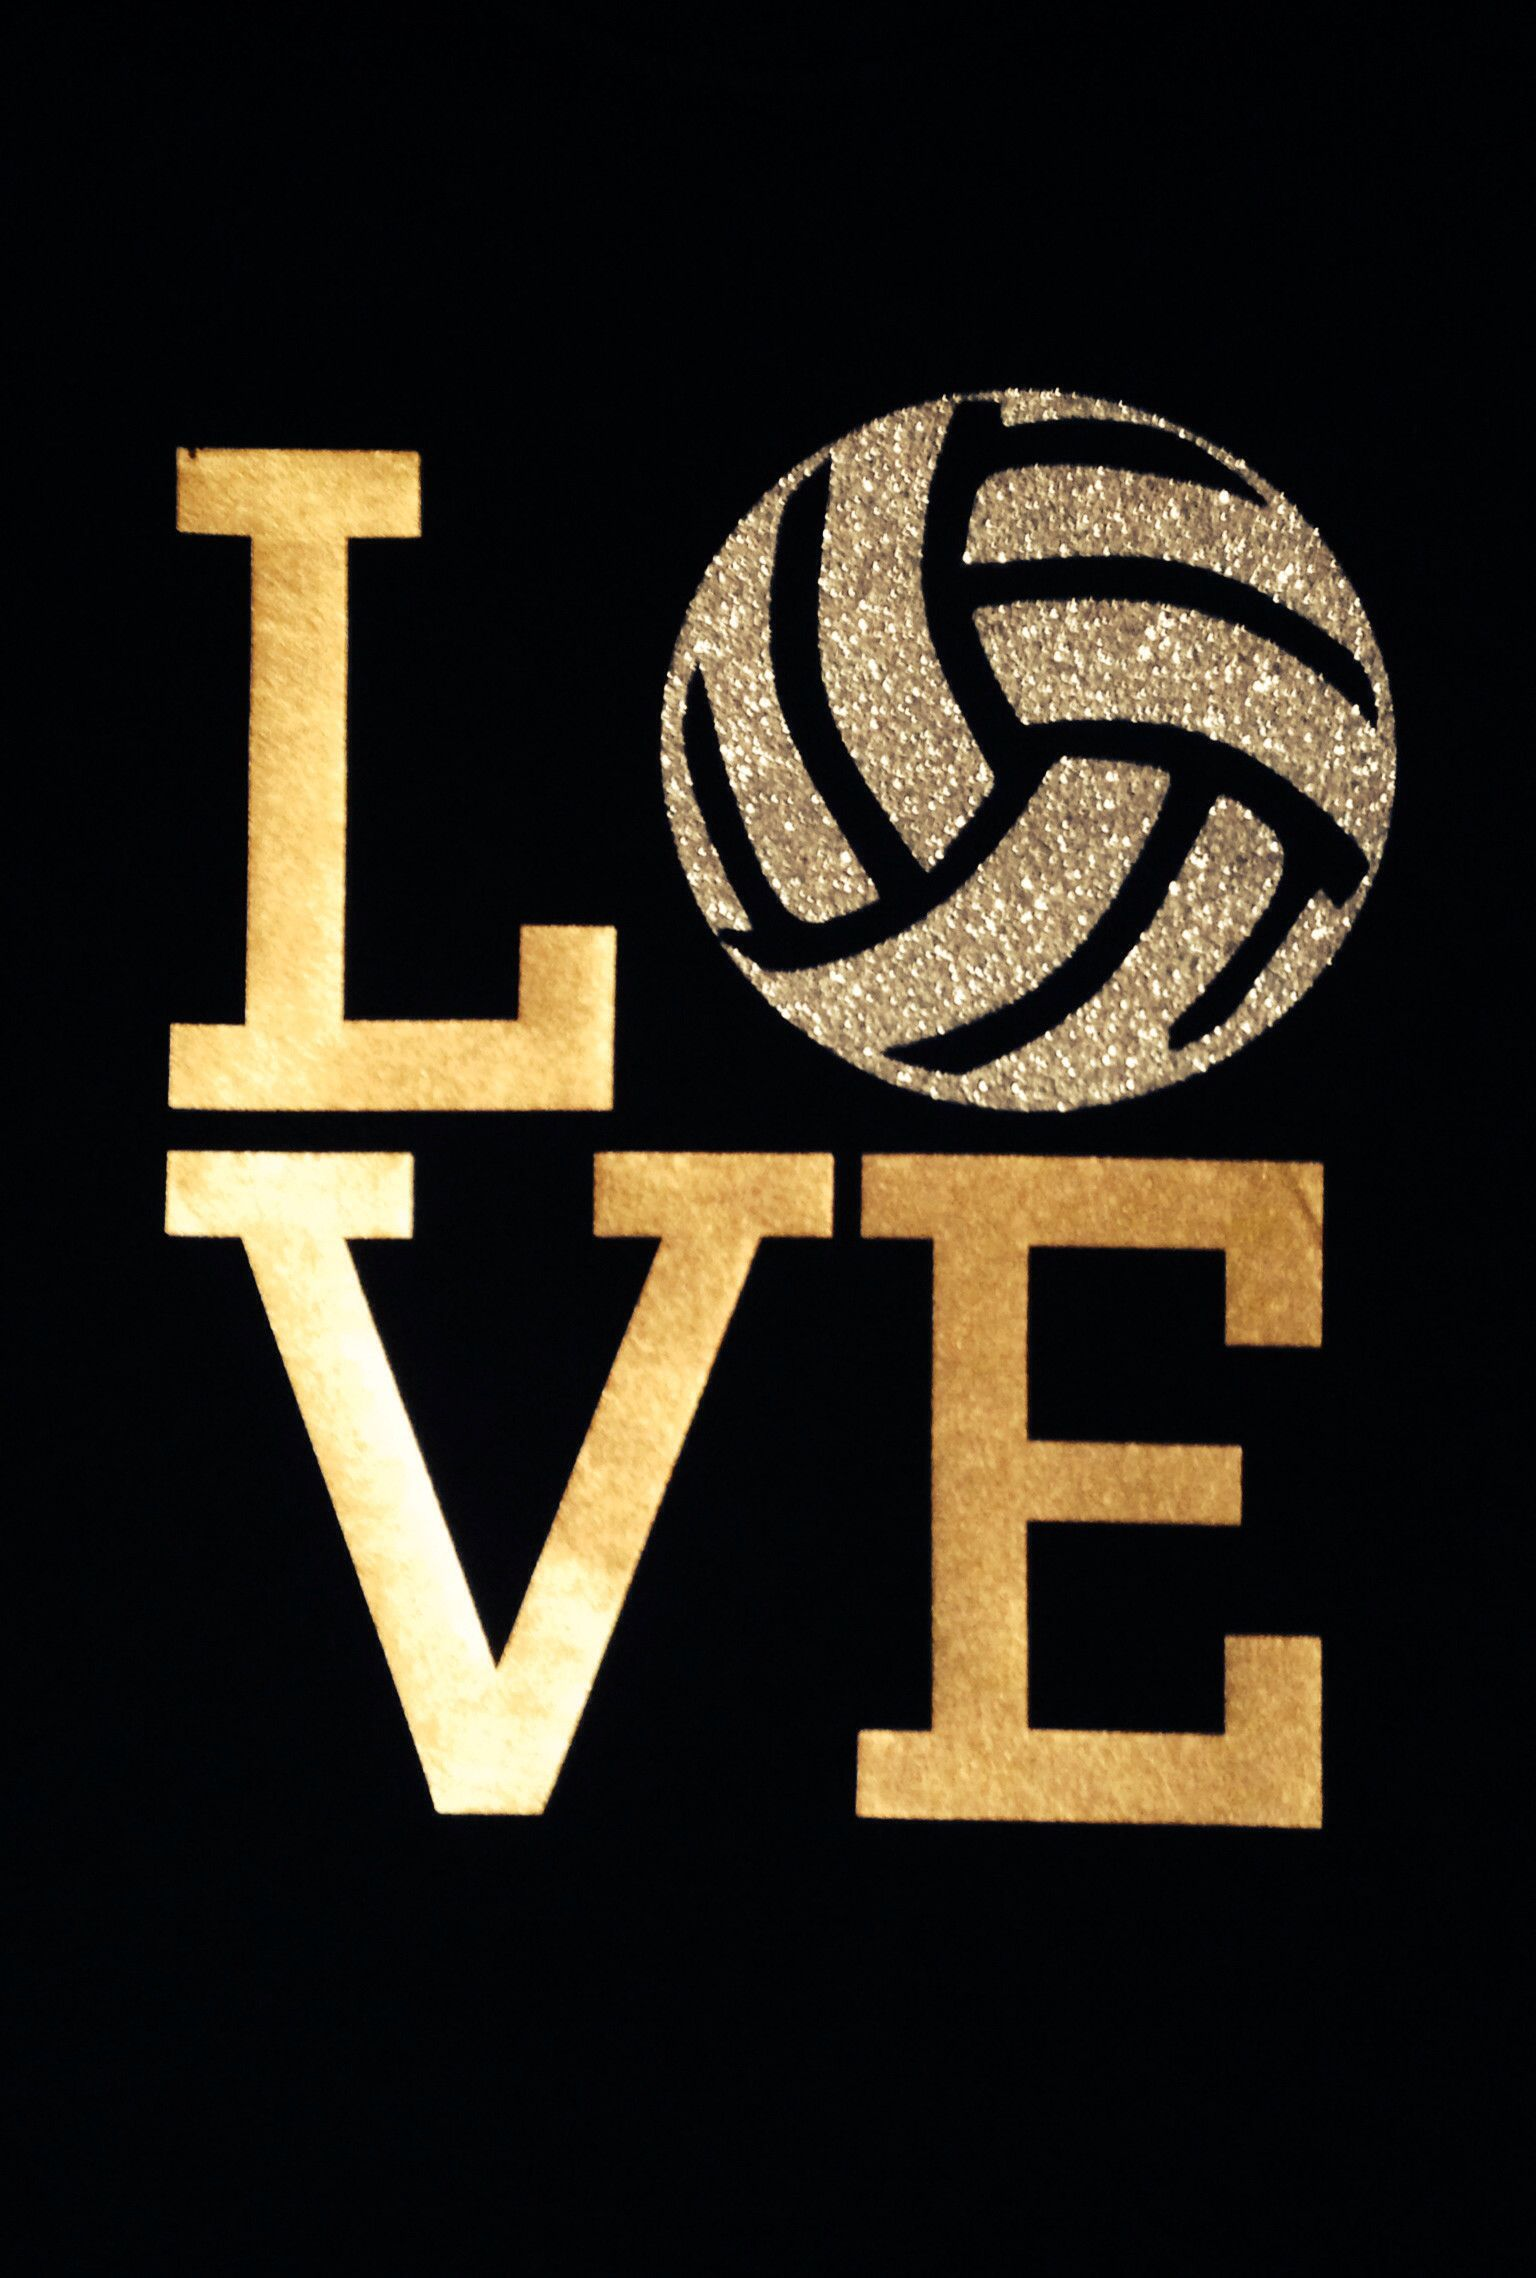 Beautiful Cute Volleyball Wallpaper For Computer Photos In 2020 Volleyball Wallpaper Volleyball Backgrounds Volleyball Quotes